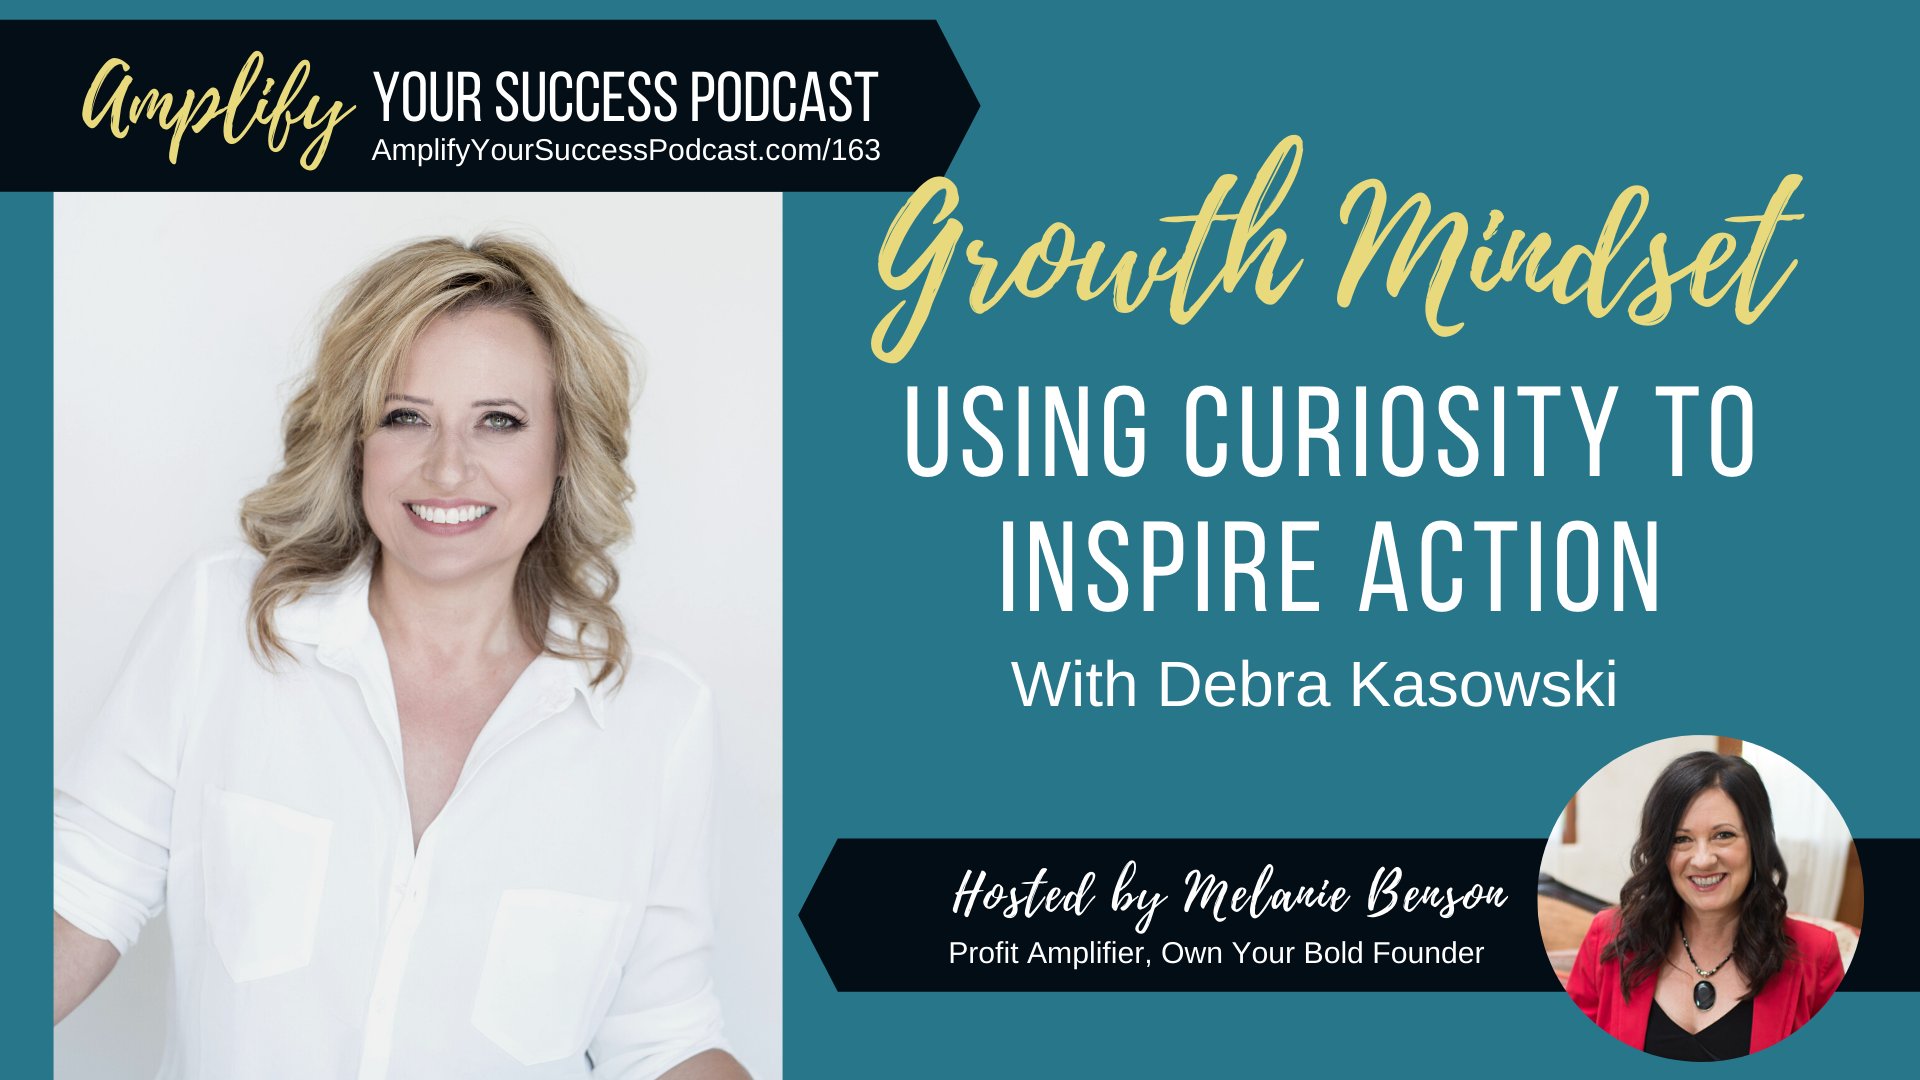 Growth Mindset - Using Curiosity to Inspire Action